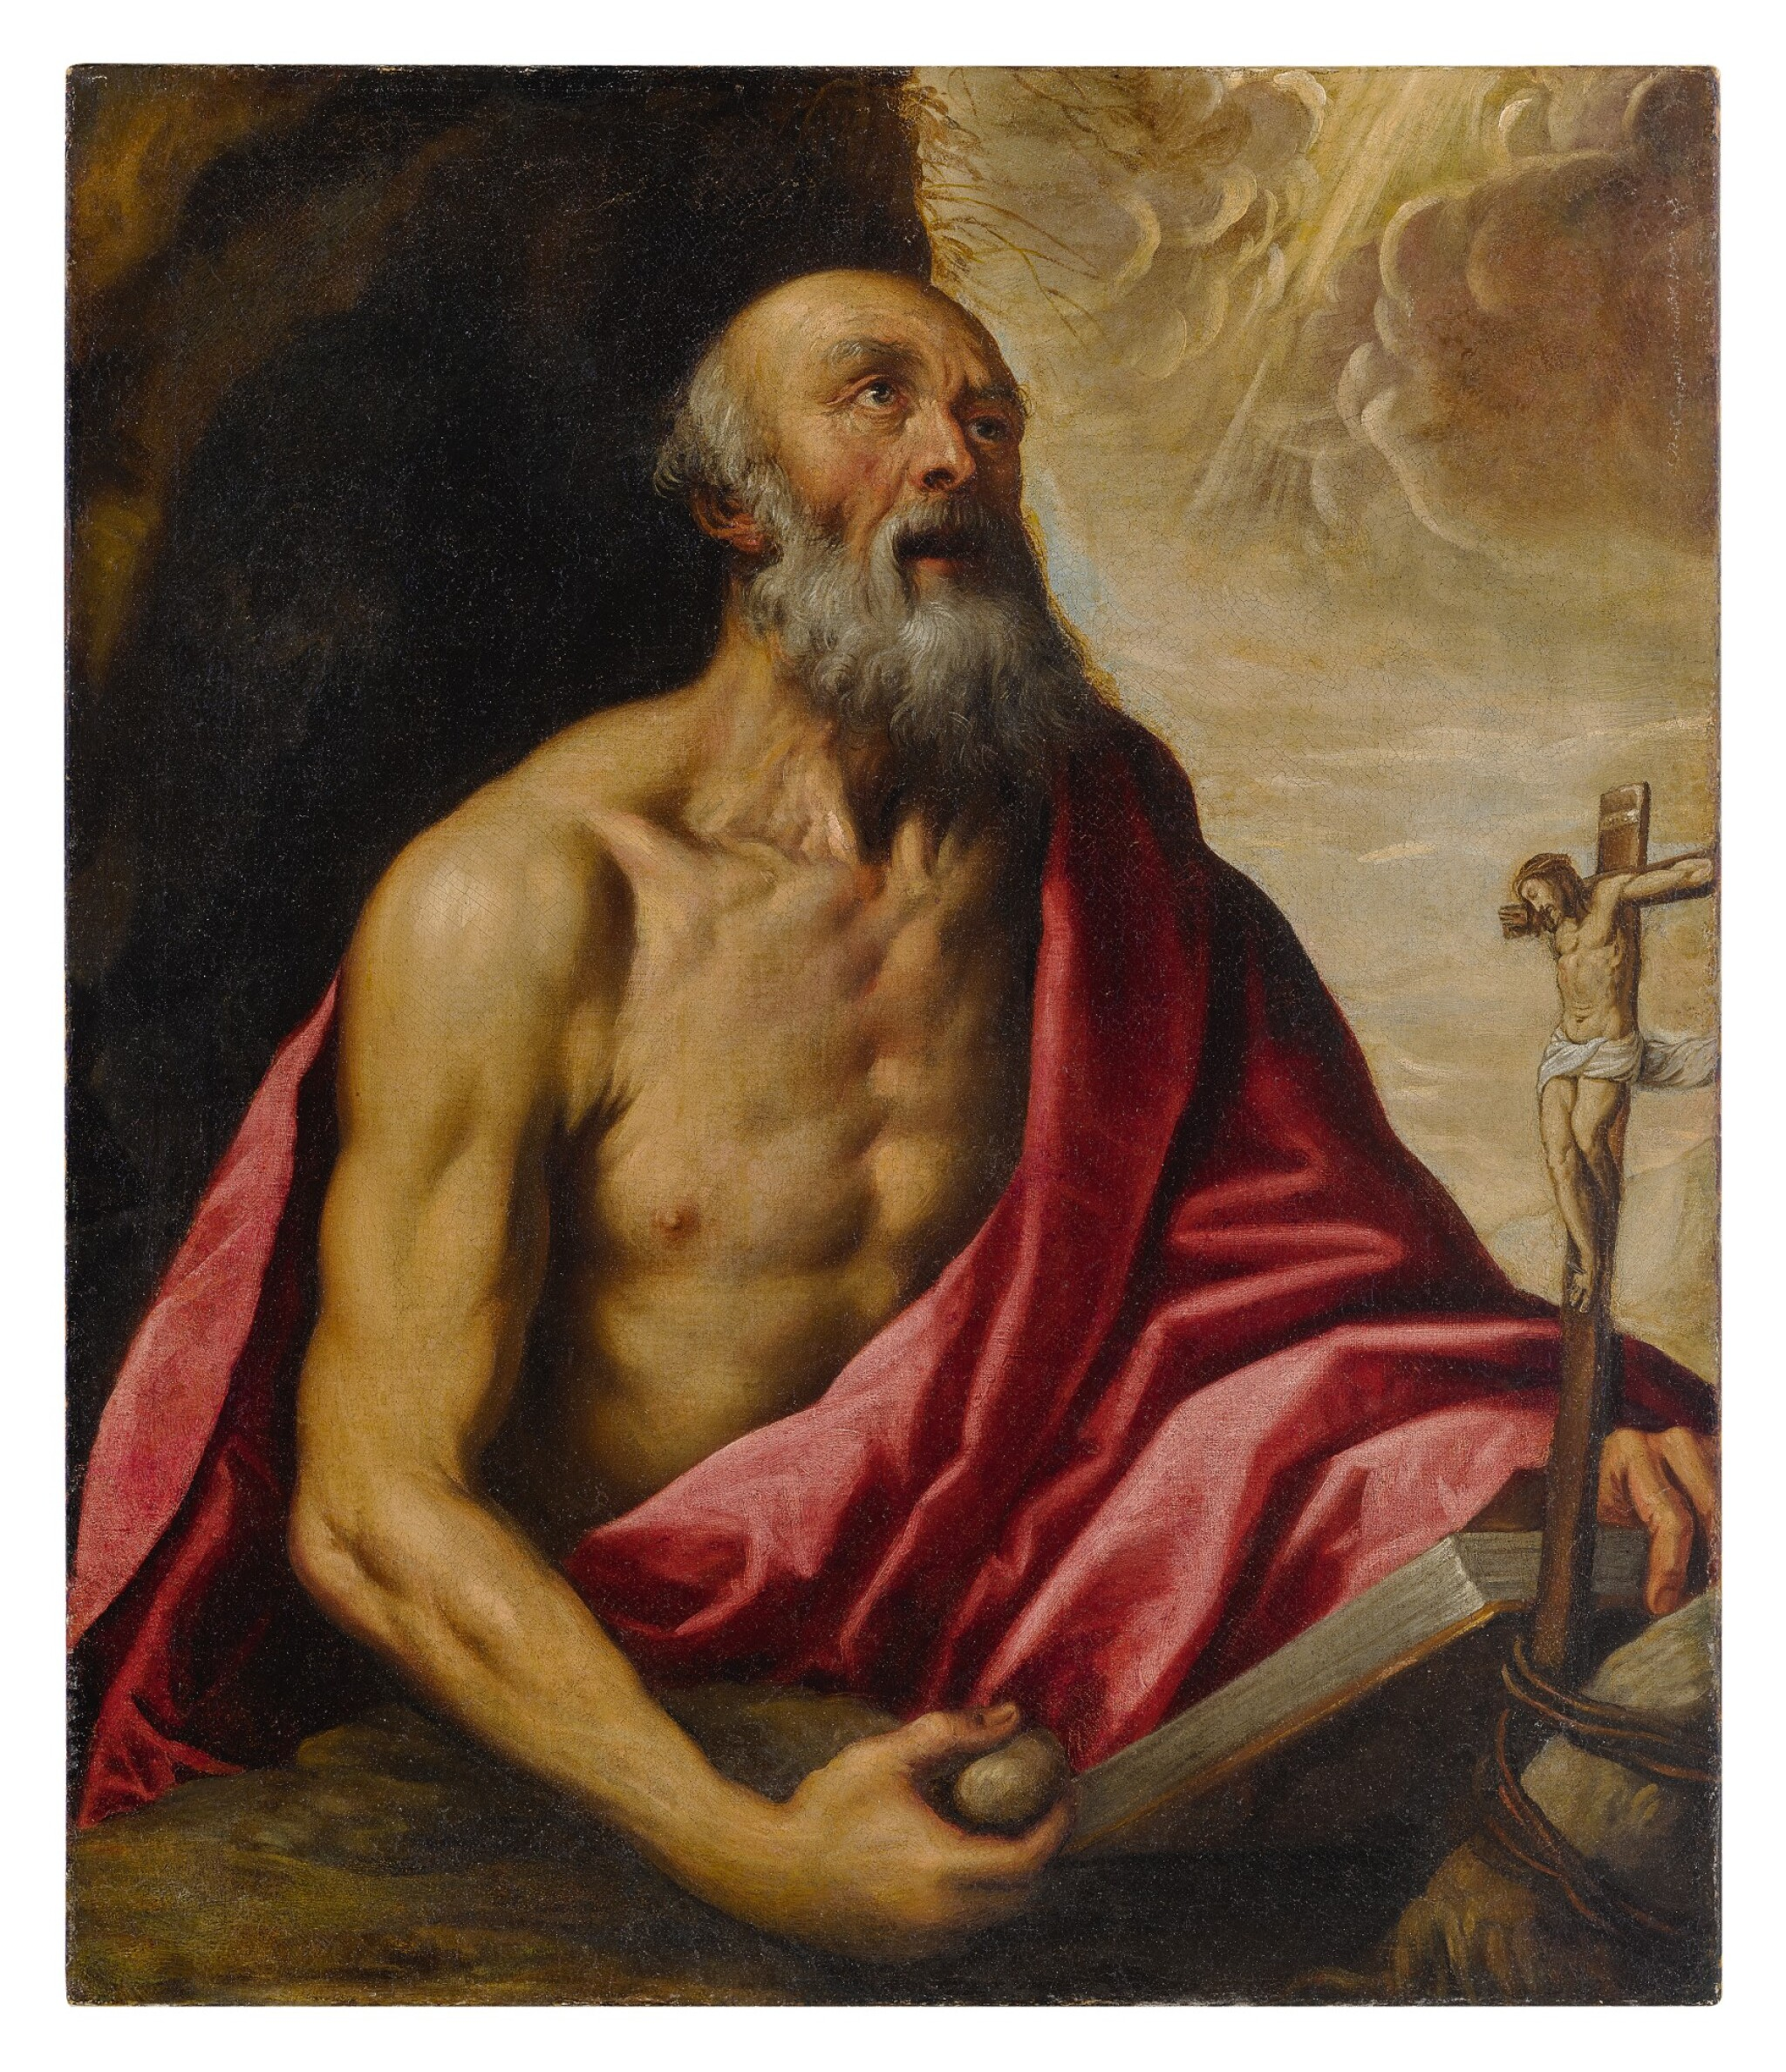 ATTRIBUTED TO JACOPO PALMA, CALLED PALMA GIOVANE | SAINT JEROME